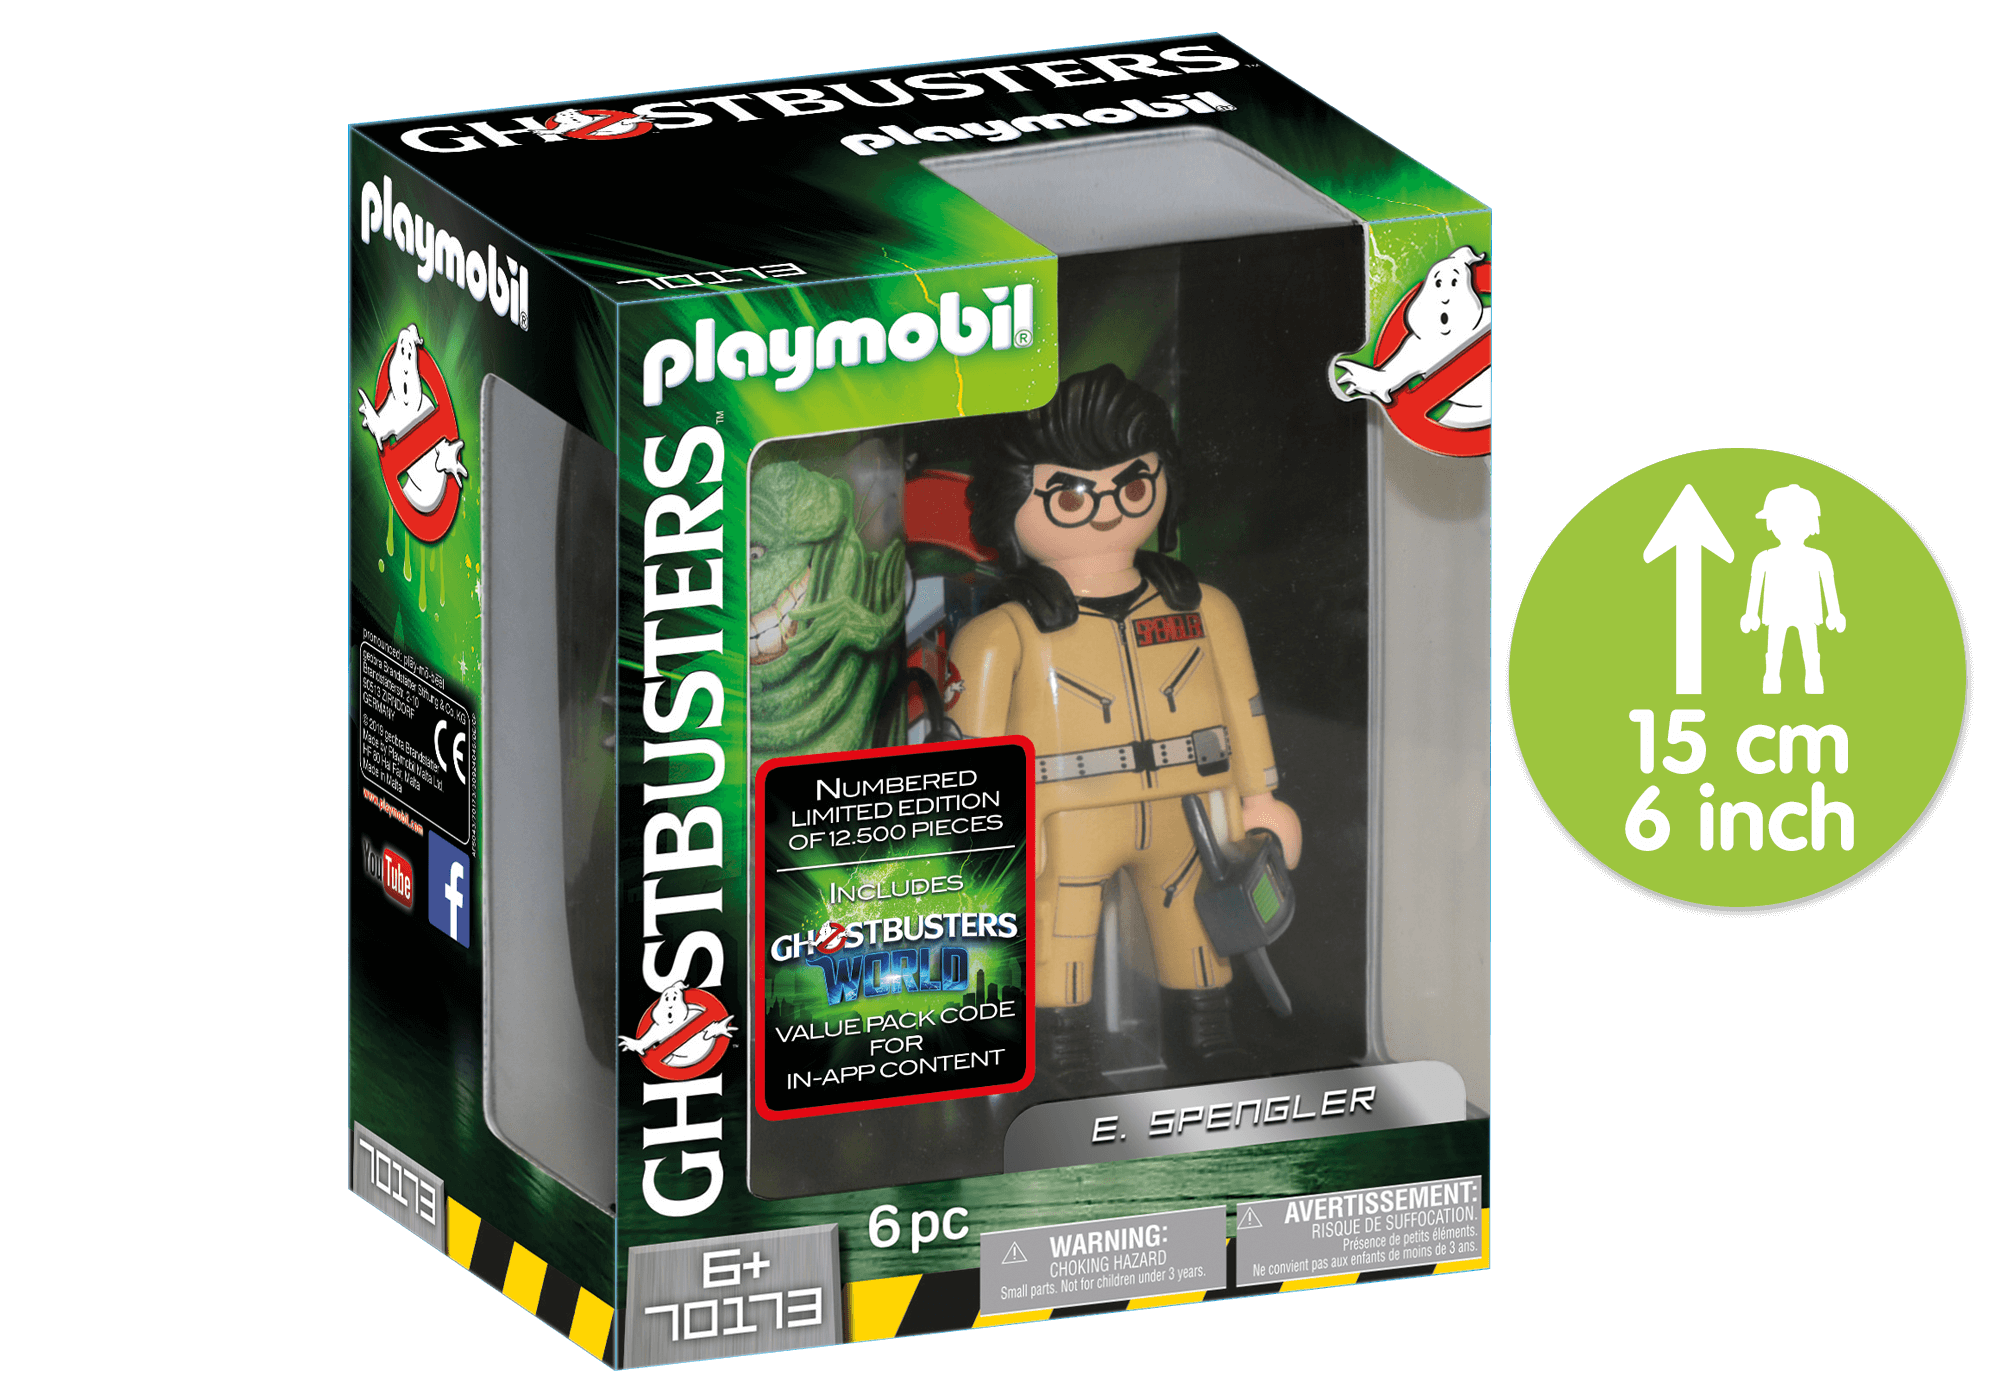 http://media.playmobil.com/i/playmobil/70173_product_detail/Ghostbusters™ Collection Figure E. Spengler